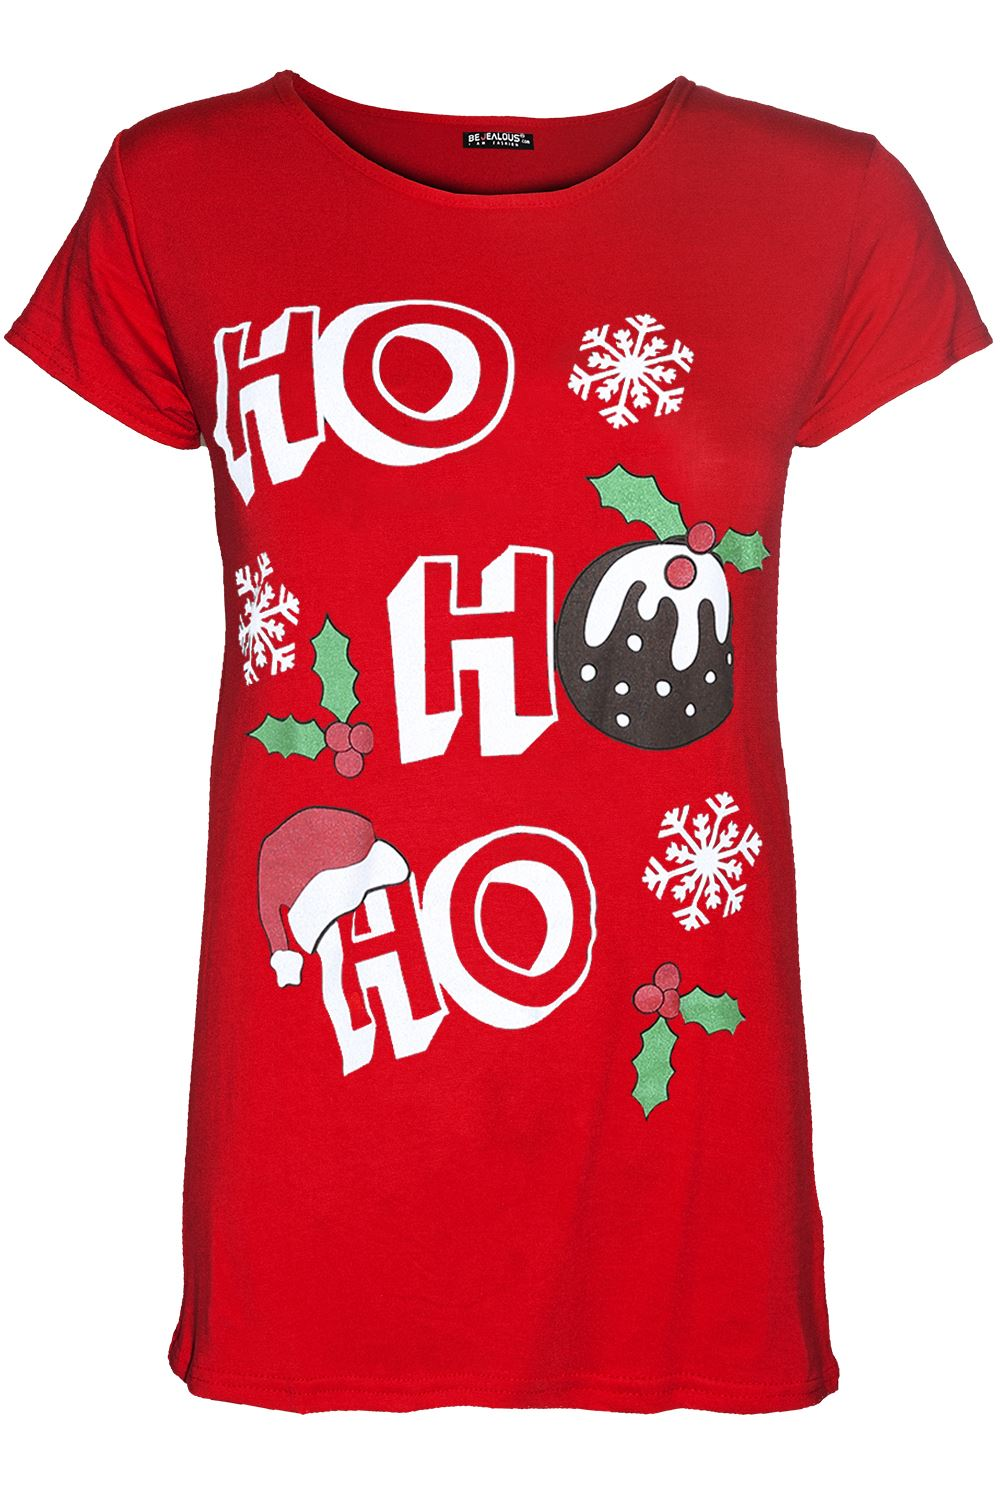 thumbnail 36 - Womens-Christmas-Xmas-Pullover-Elf-Candystick-Snowflakes-Ladies-T-Shirt-Tee-Top